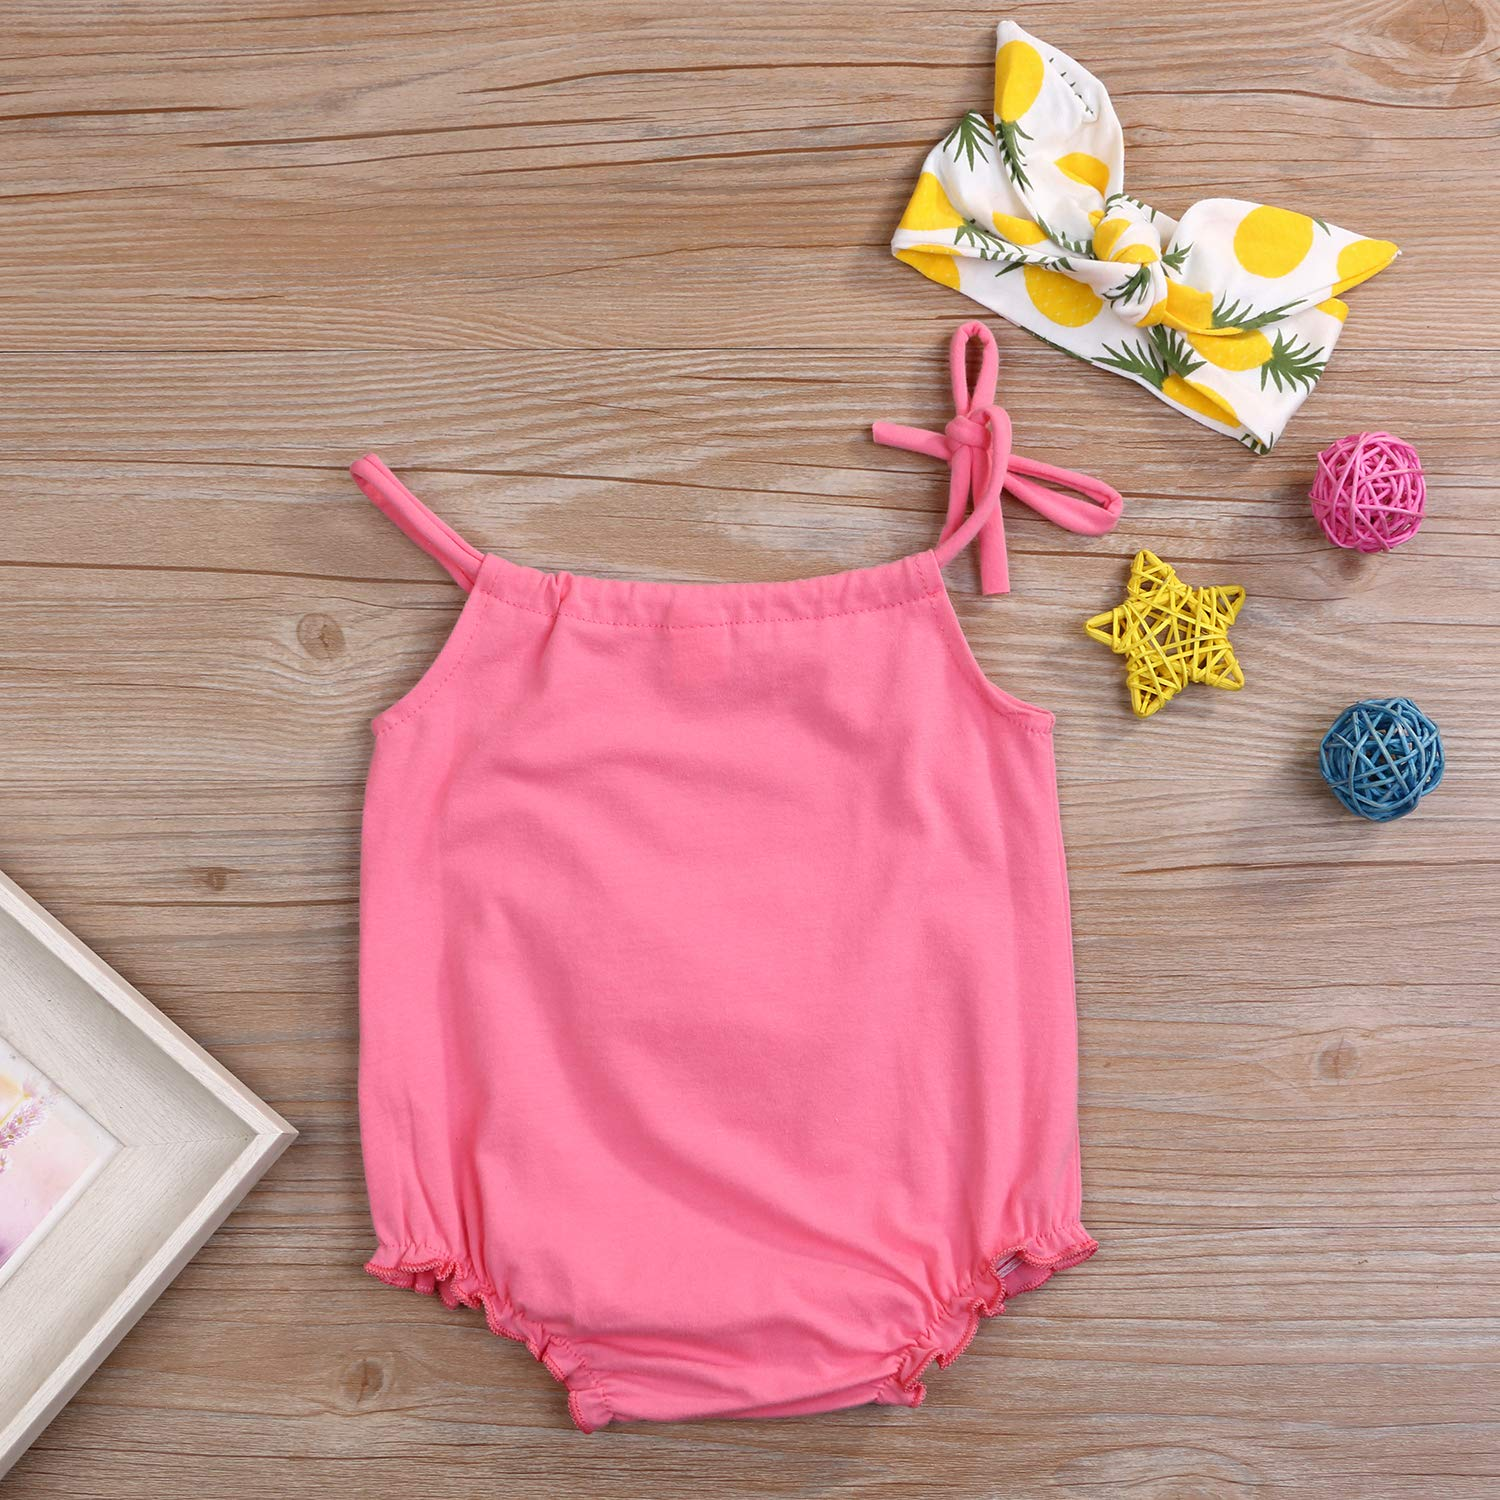 YOUNGER TREE Toddler Baby Girl Romper Pineapple Outfits Cotton Sleeveless Strap Romper Headband Summer Clothes 2PCS